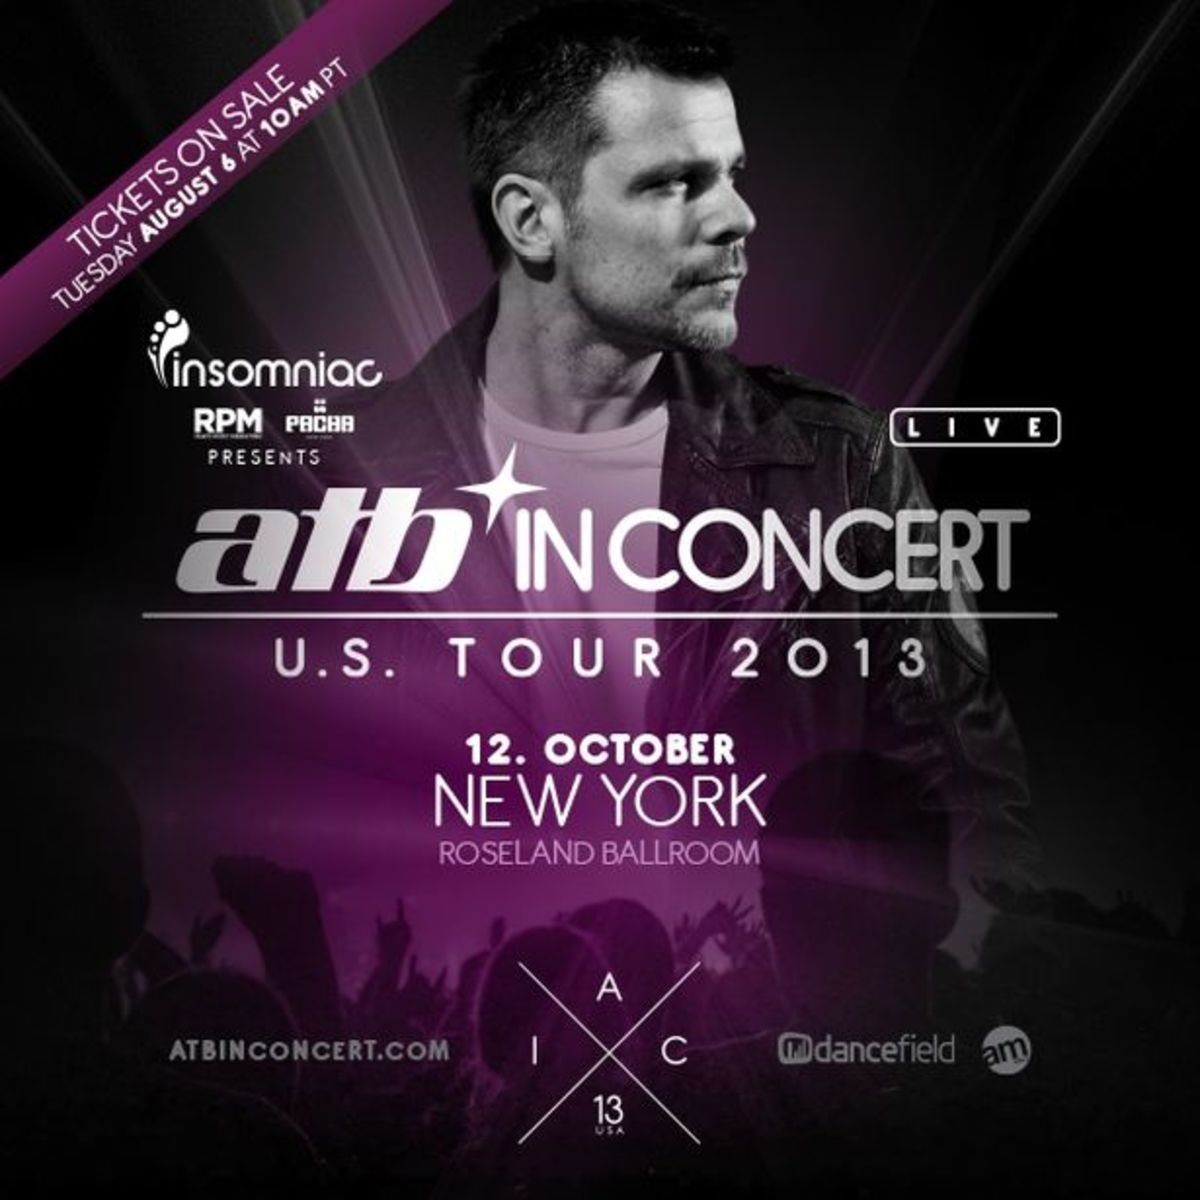 EDM Event: ATB At Roseland Ballroom In NYC October 12, 2013; Tickets On Sale Now